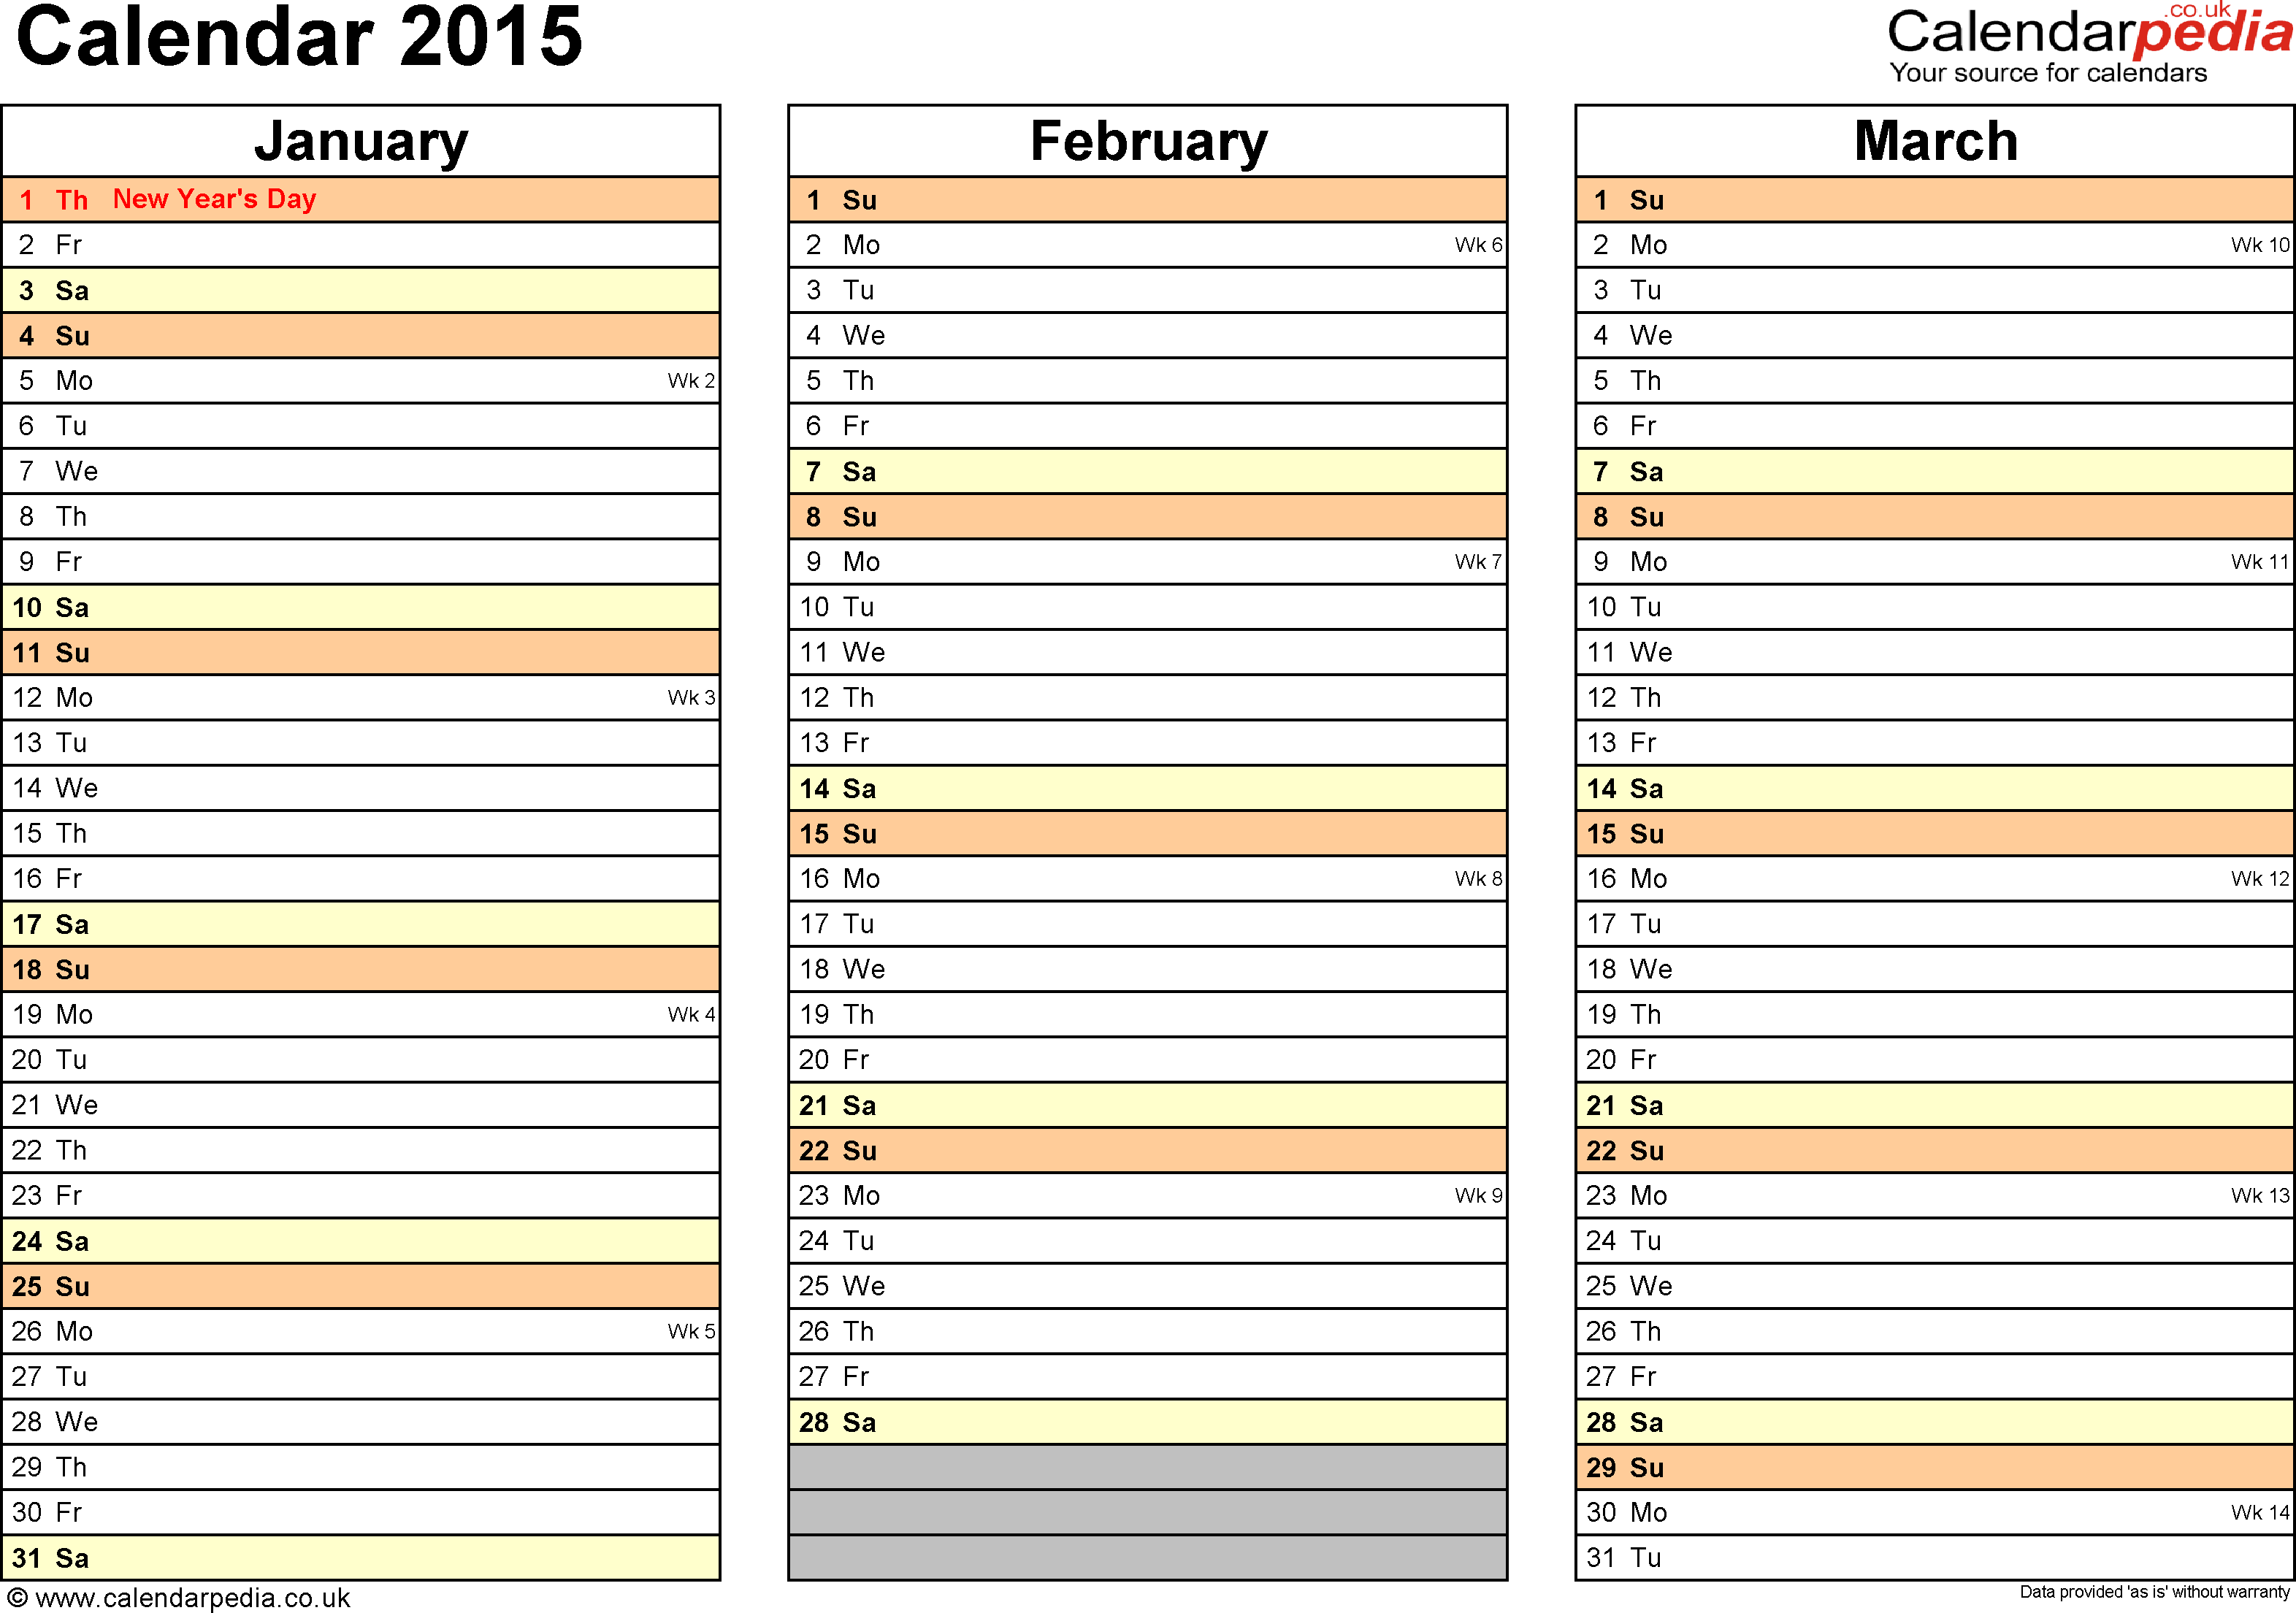 calendar 2015 uk 16 printable word templates template 5 yearly calendar 2015 as word template landscape orientation 4 pages